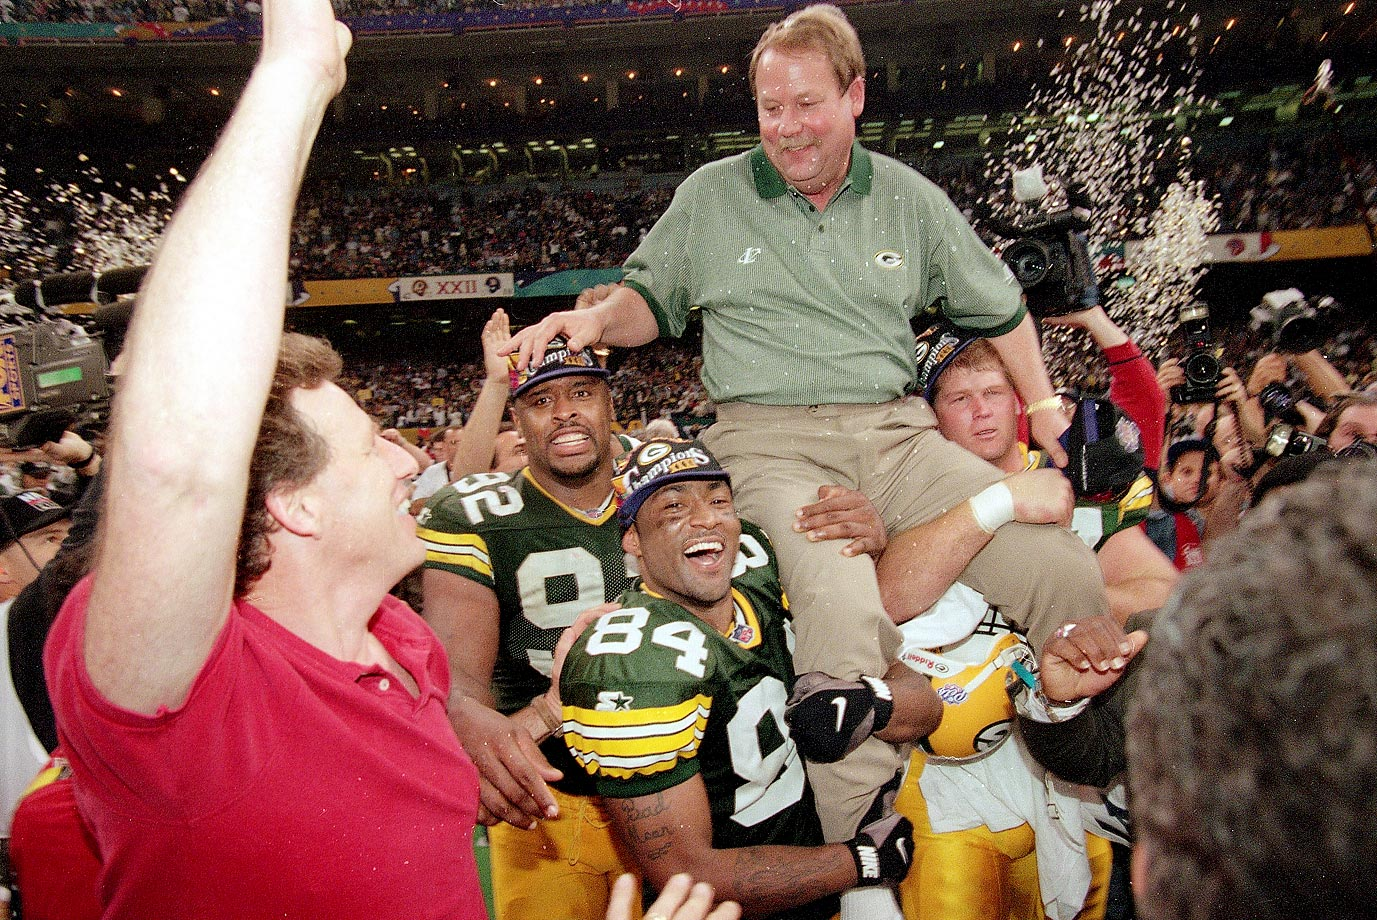 Holmgren's tenure in Green Bay was one for the ages. From 1992 to '98, Holmgren ruled the Packers to a 75-37 record and two Super Bowl appearances, including one victory in 1996. However, he left the Packers after the 1998 season in favor of the Seahawks' blockbuster offer to be both GM and coach. His eight-year contract initially gave Holmgren absolute power over the franchise; and he repaid that confidence with a playoff berth in 1999, his first full season in Seattle. Six years later, after being stripped of his GM duties, Holmgren led the Seahawks to their one and only Super Bowl appearance.